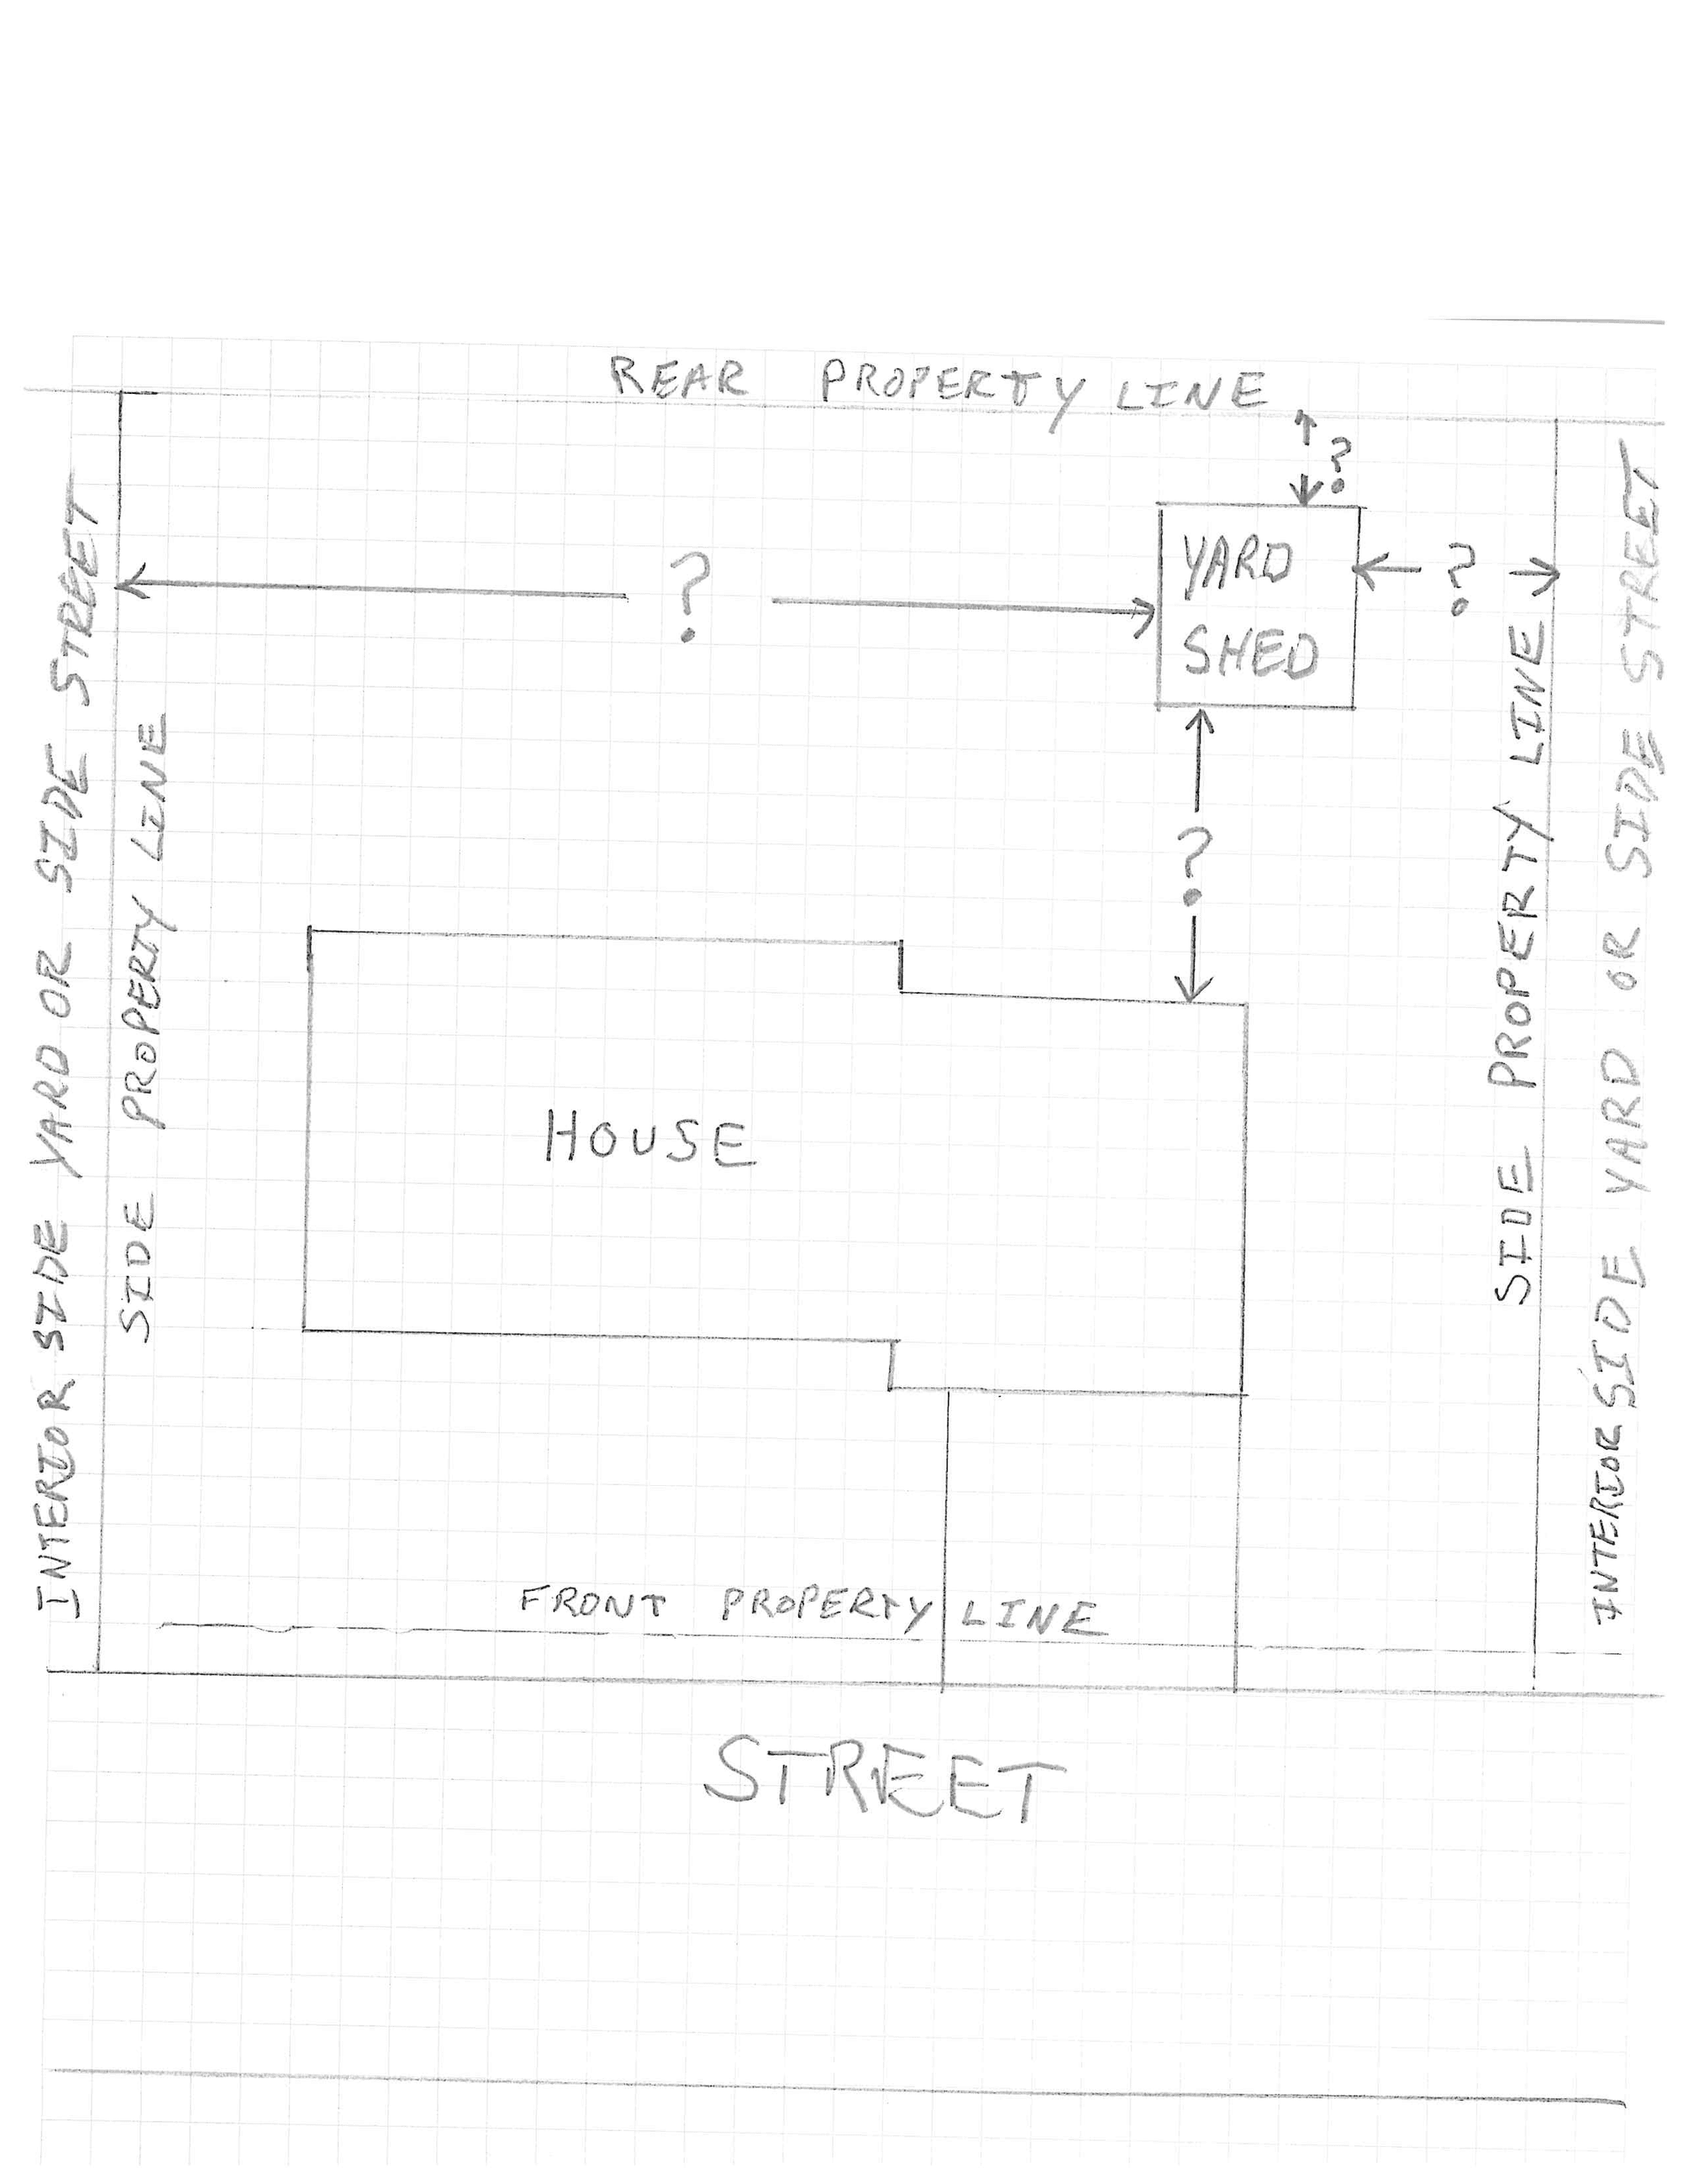 Sample Yard Shed Site plan png